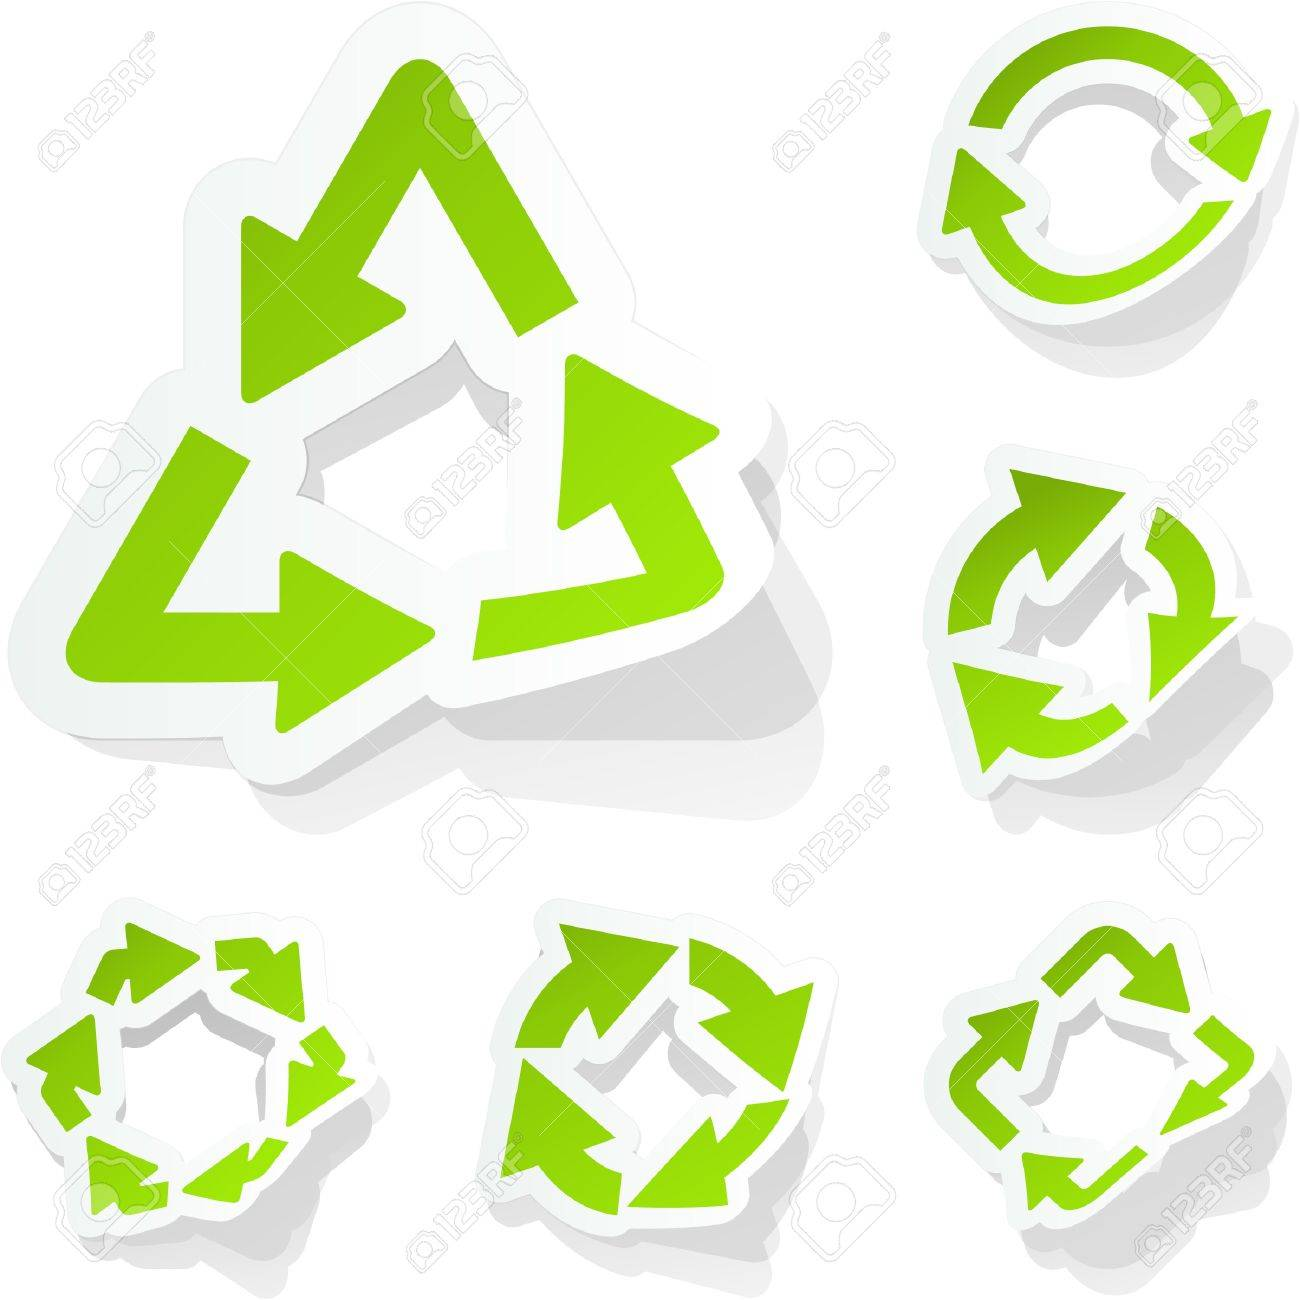 Recycle sticker set. Stock Vector - 9040031